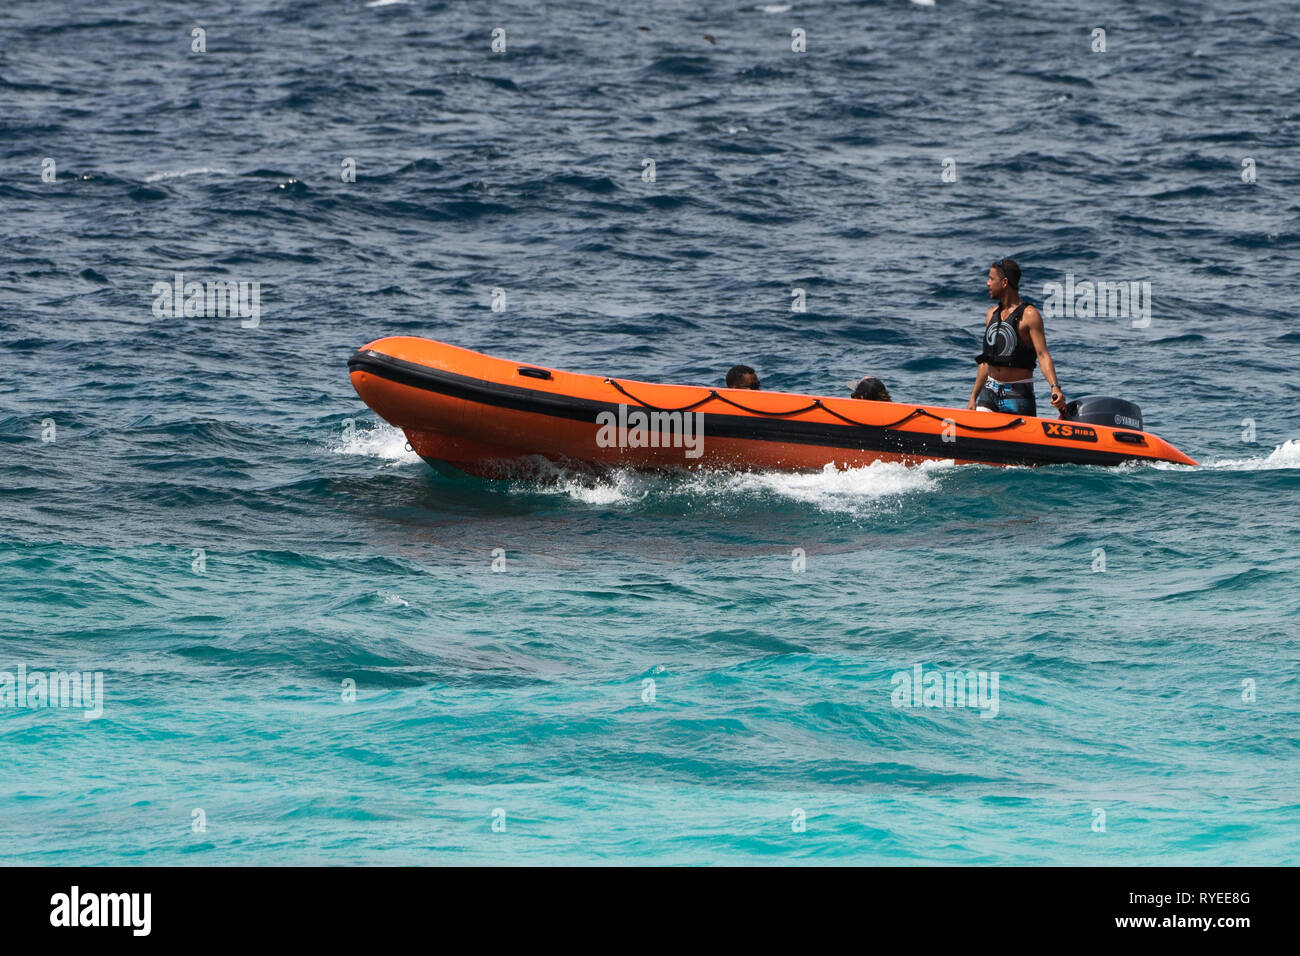 A rubber dinghy boat lands on a beach of Aride Island, Seychelles. Aride Island is the northernmost granitic island in the Seychelles (Bird Island is  - Stock Image